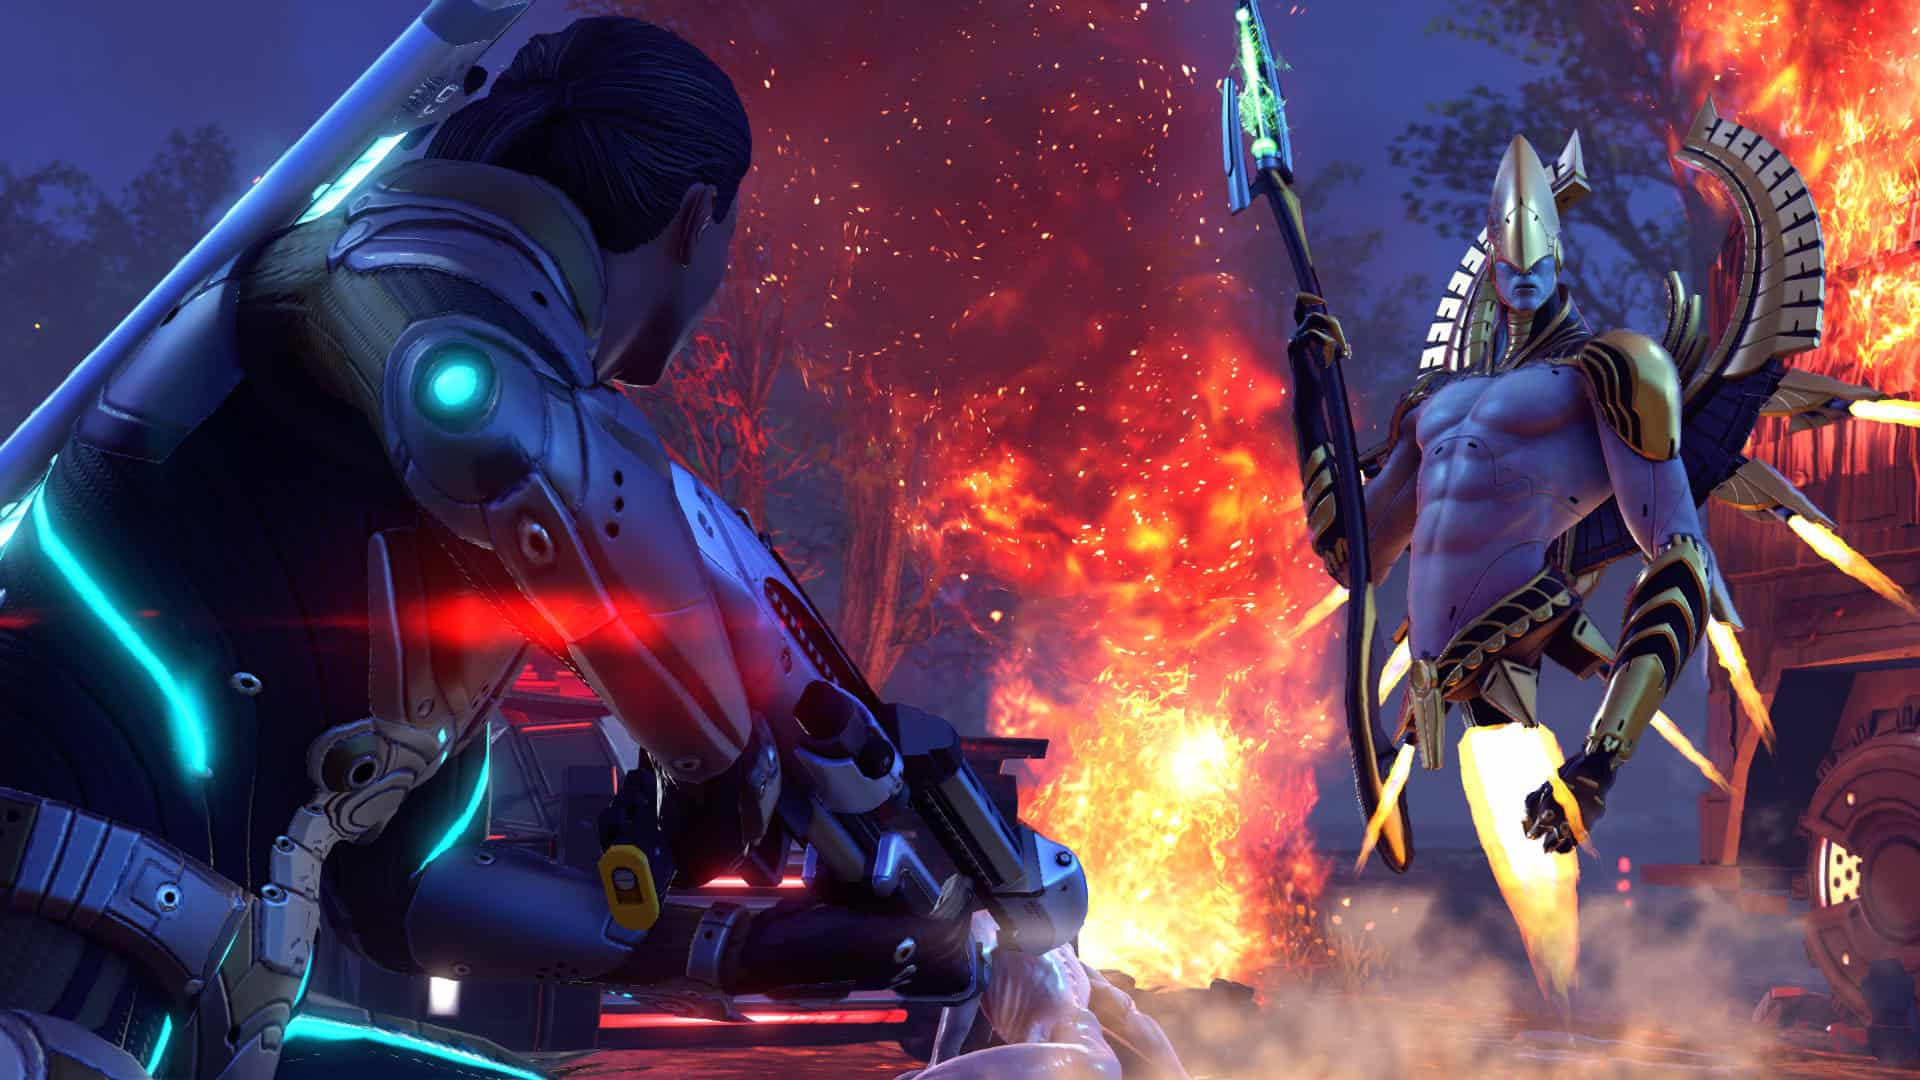 Another free game for Xbox One and PC! This time it's XCOM 2!